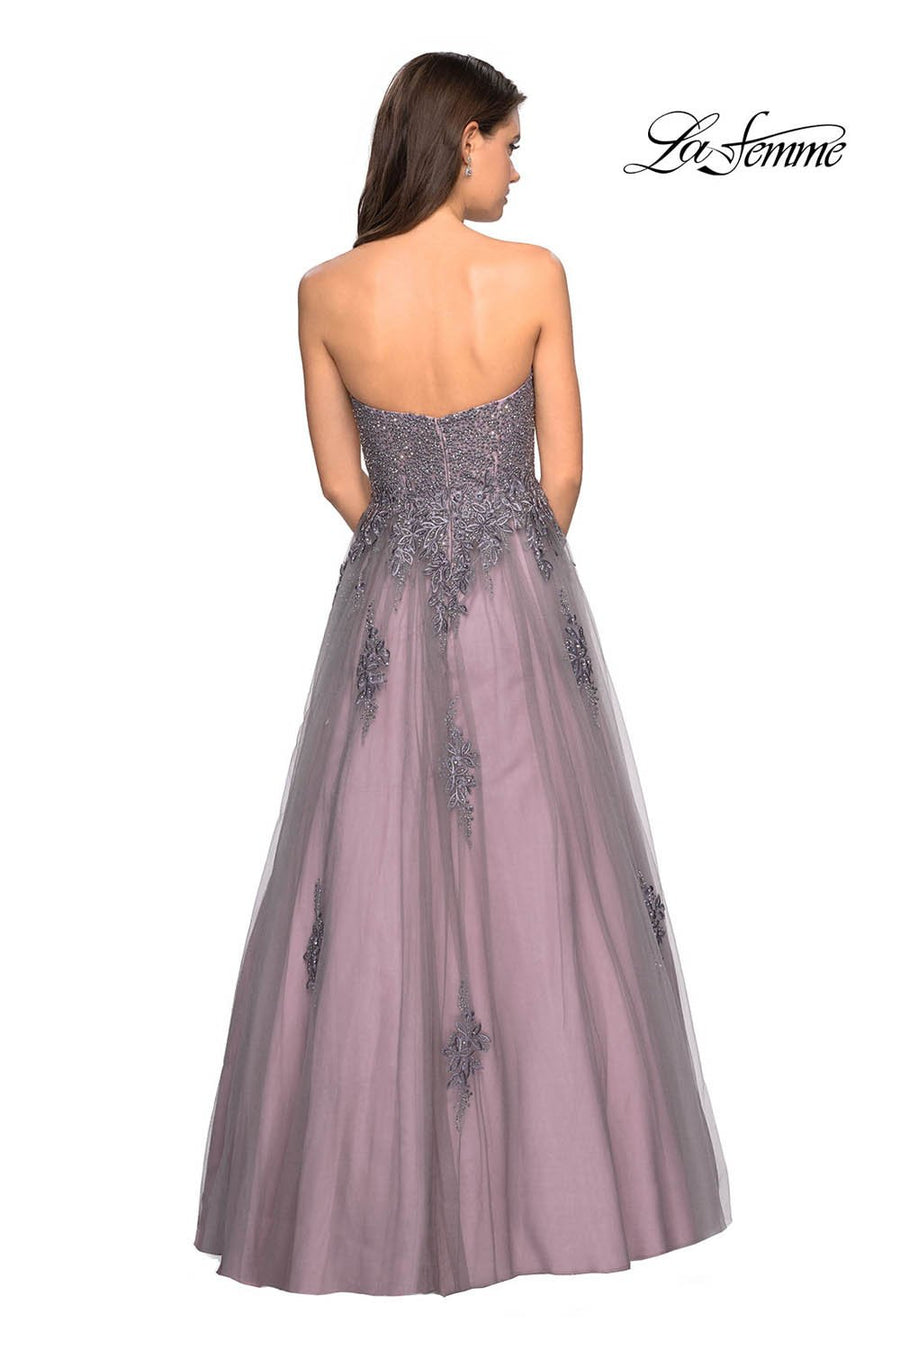 Gigi by La Femme 27767 prom dress images.  Gigi by La Femme 27767 is available in these colors: Grey Pink.